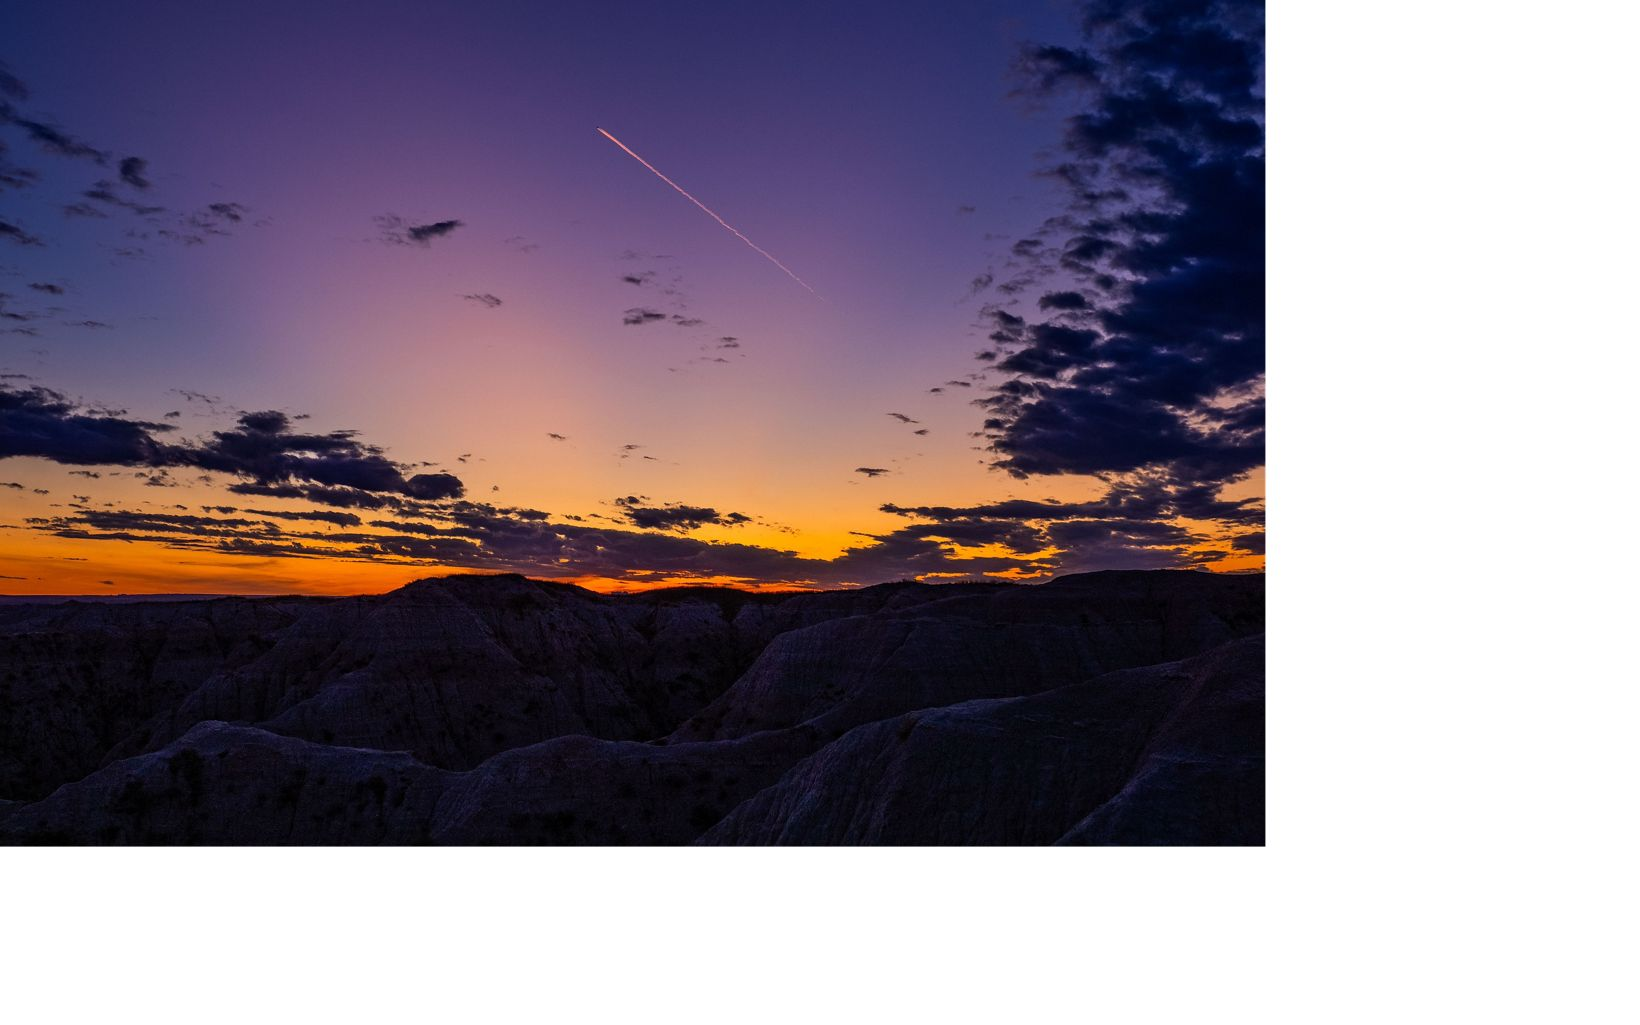 Jet Trail at sunset in Badlands National Park